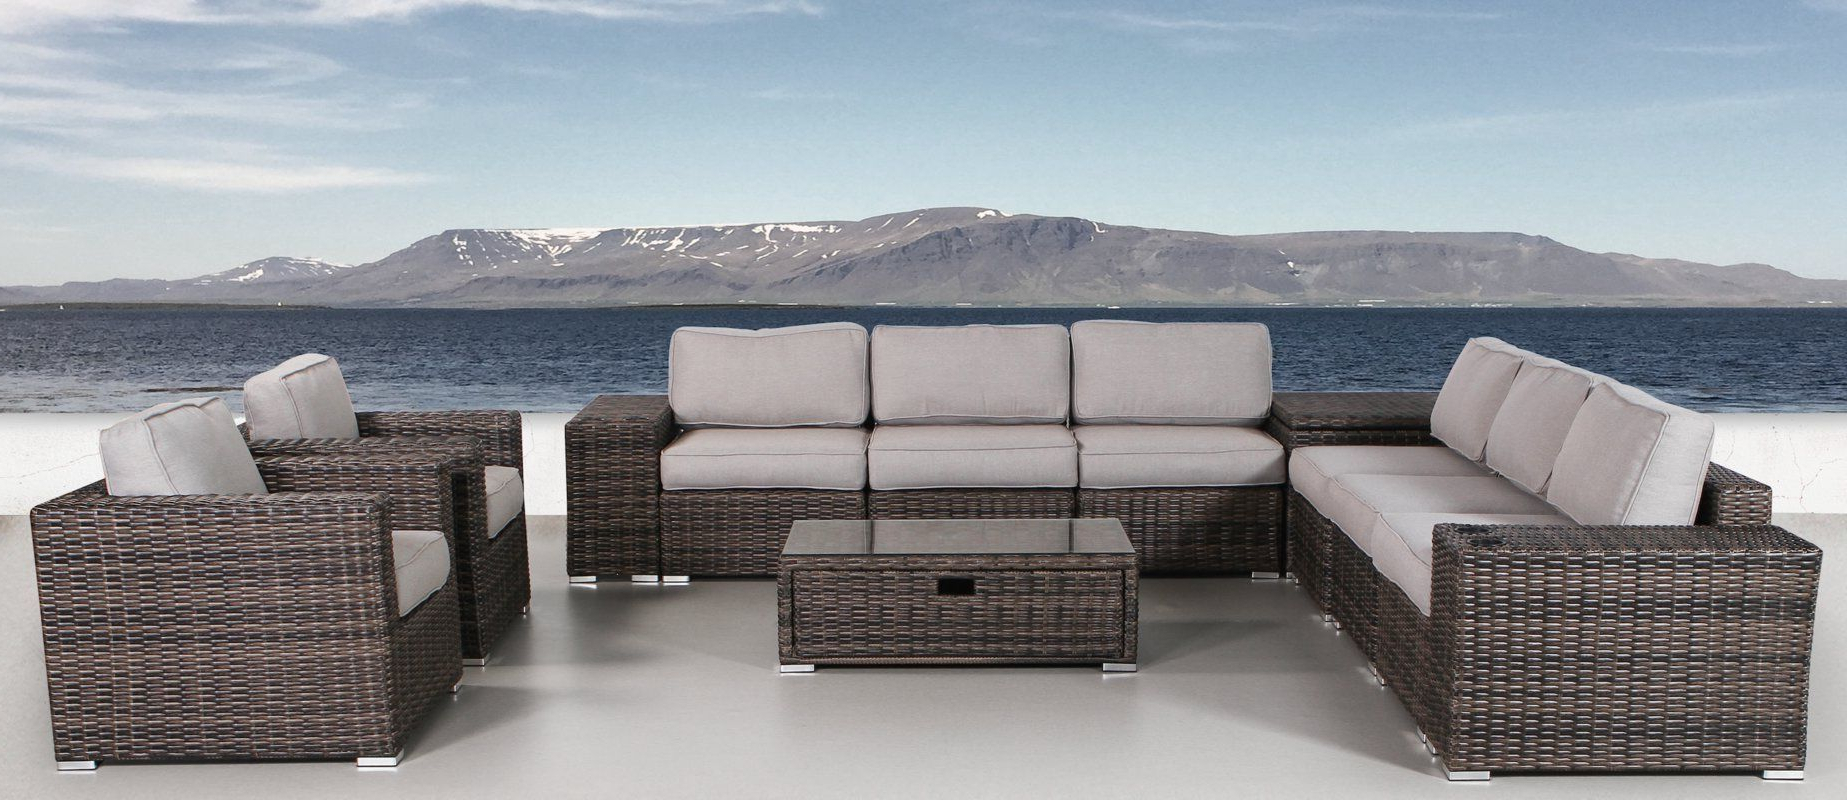 Nolen Patio Sectionals With Cushions Within Fashionable Nolen 12 Piece Rattan Sectional Seating Group With Cushions (View 14 of 20)